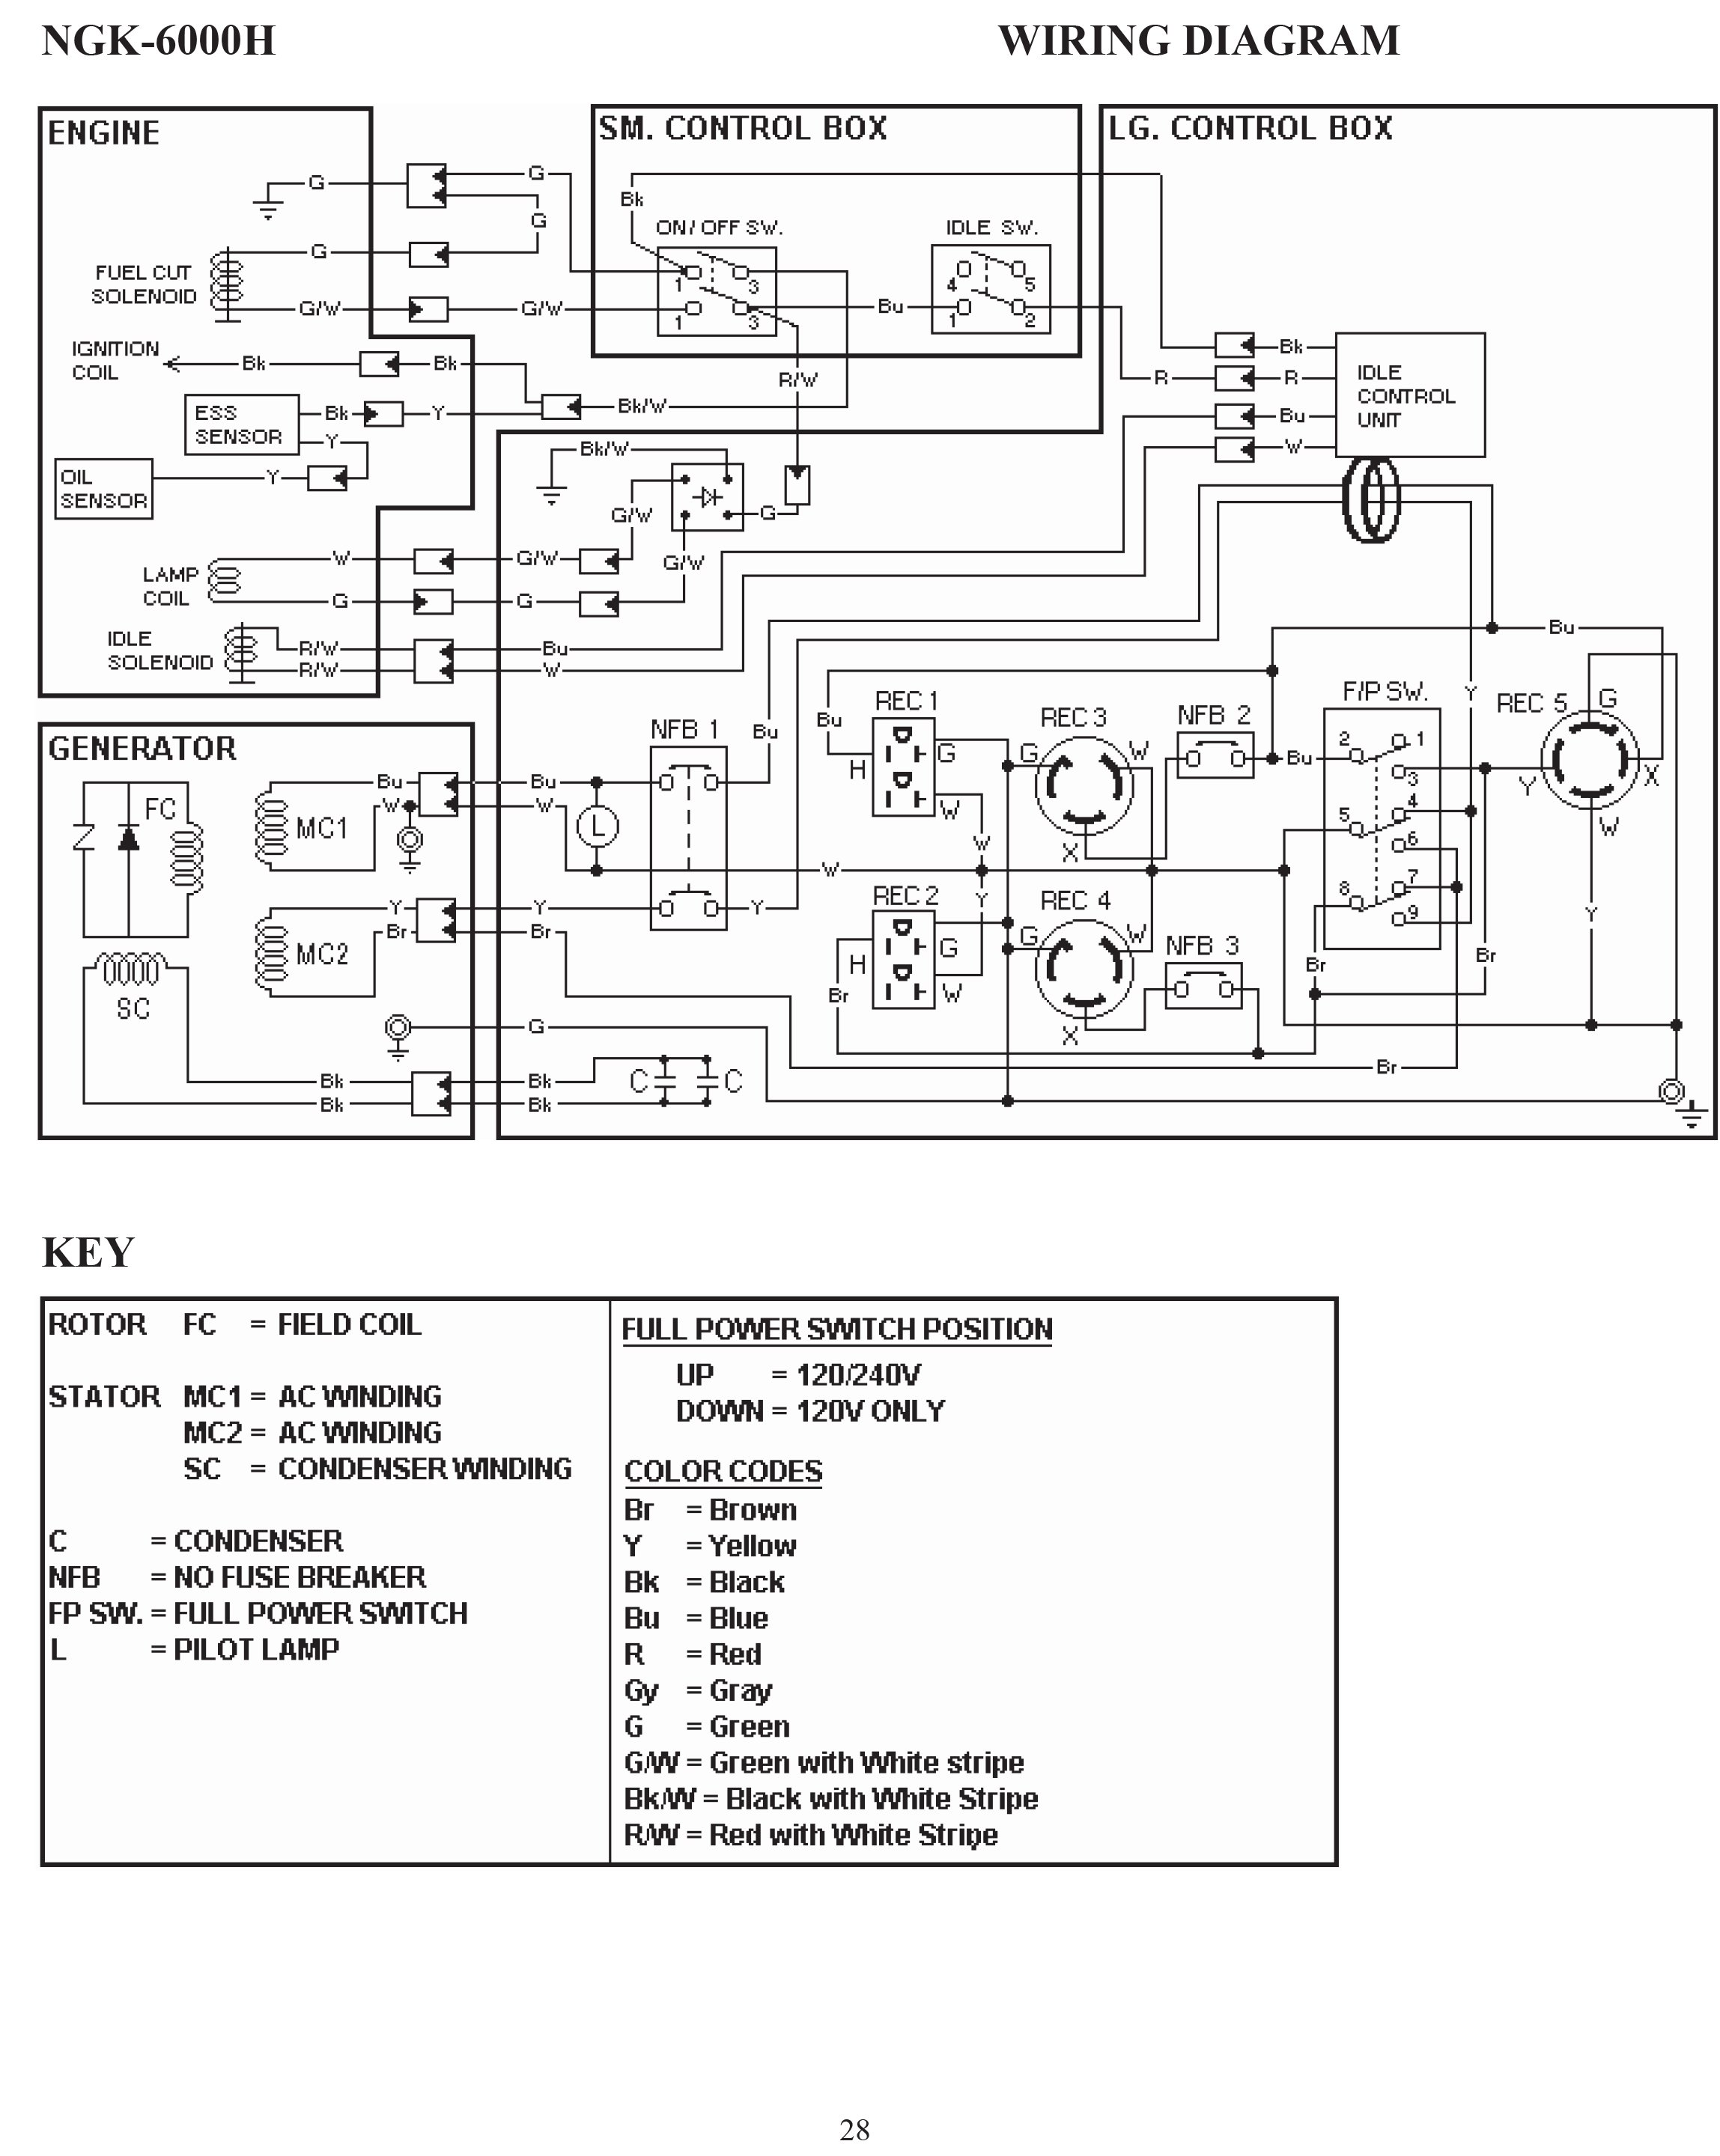 Generator Stator Wiring Diagram Diagrams Backup Hank I See Your Reply To The Problem With Dewalt Dg6000 From 2 Standby